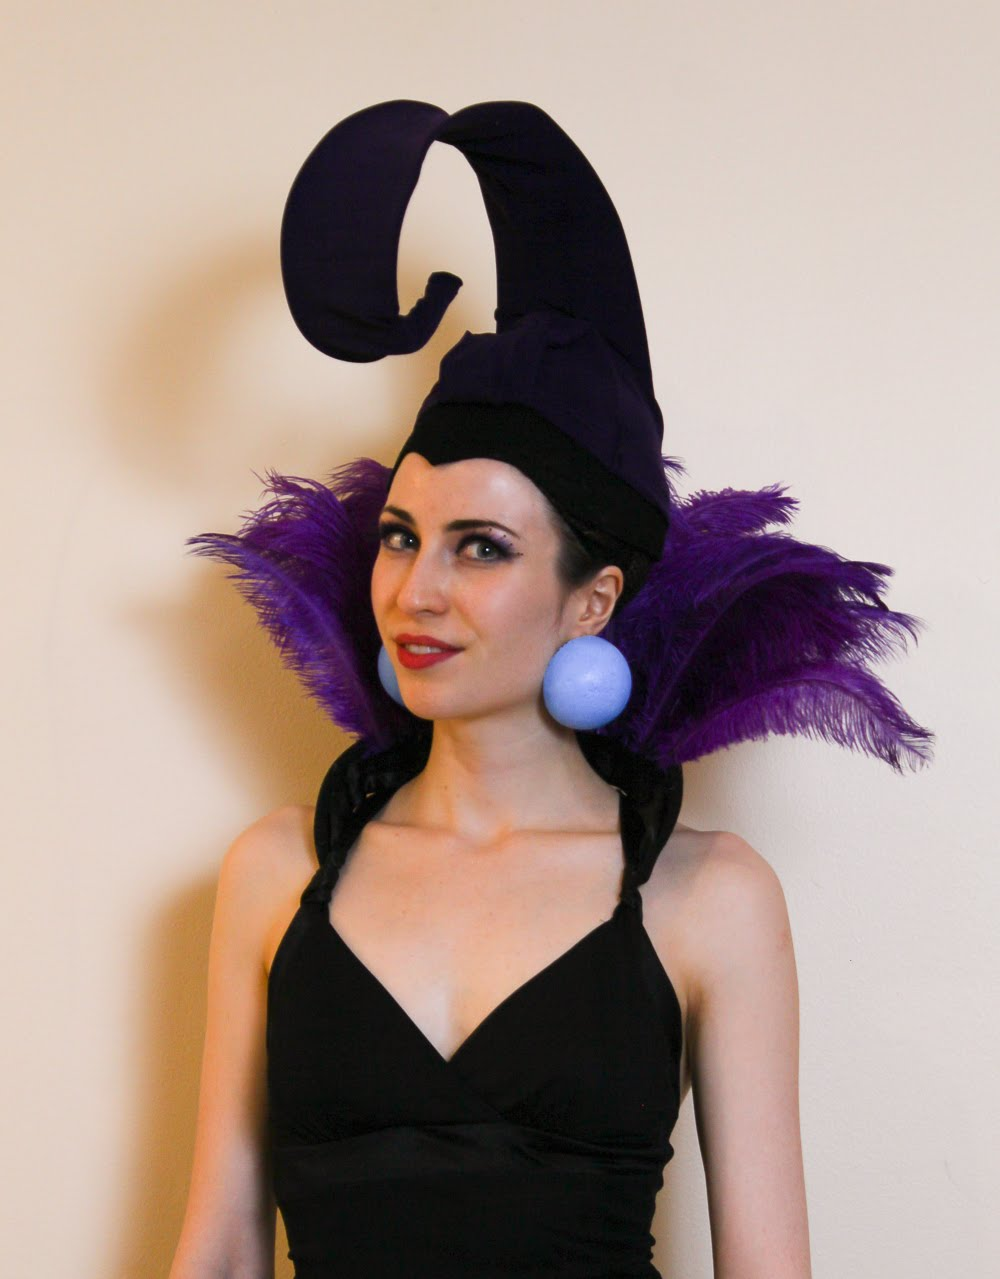 Inexpensive & easy Yzma costume from The Emperor's New Groove - made from feathers, coat hangers and a cloche hat.